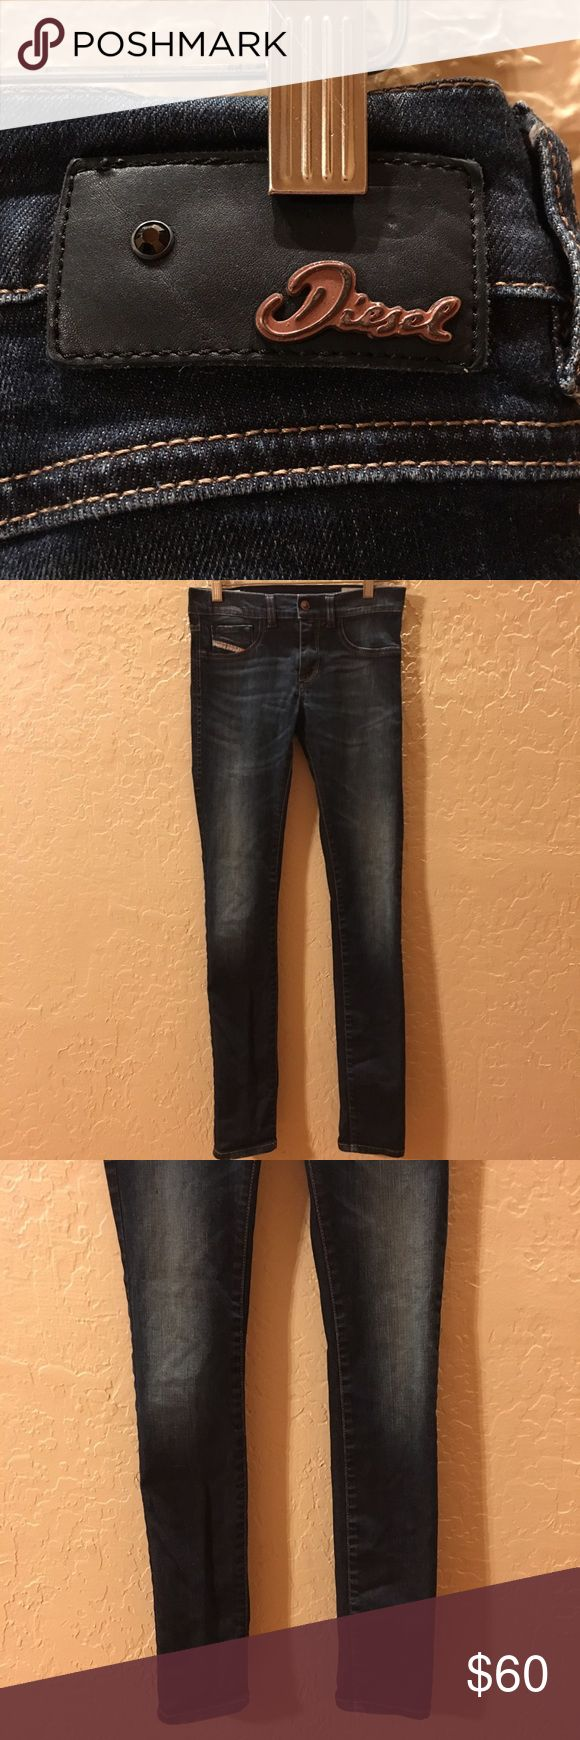 "Diesel Livier Stretch JJ Legging Jeans dark wash Gently Used with out flaws.  25X30.  Measures 26"" waist and 30"" inseam. Dark wash skinny.  Smoke & pet free home. Diesel Jeans Skinny"